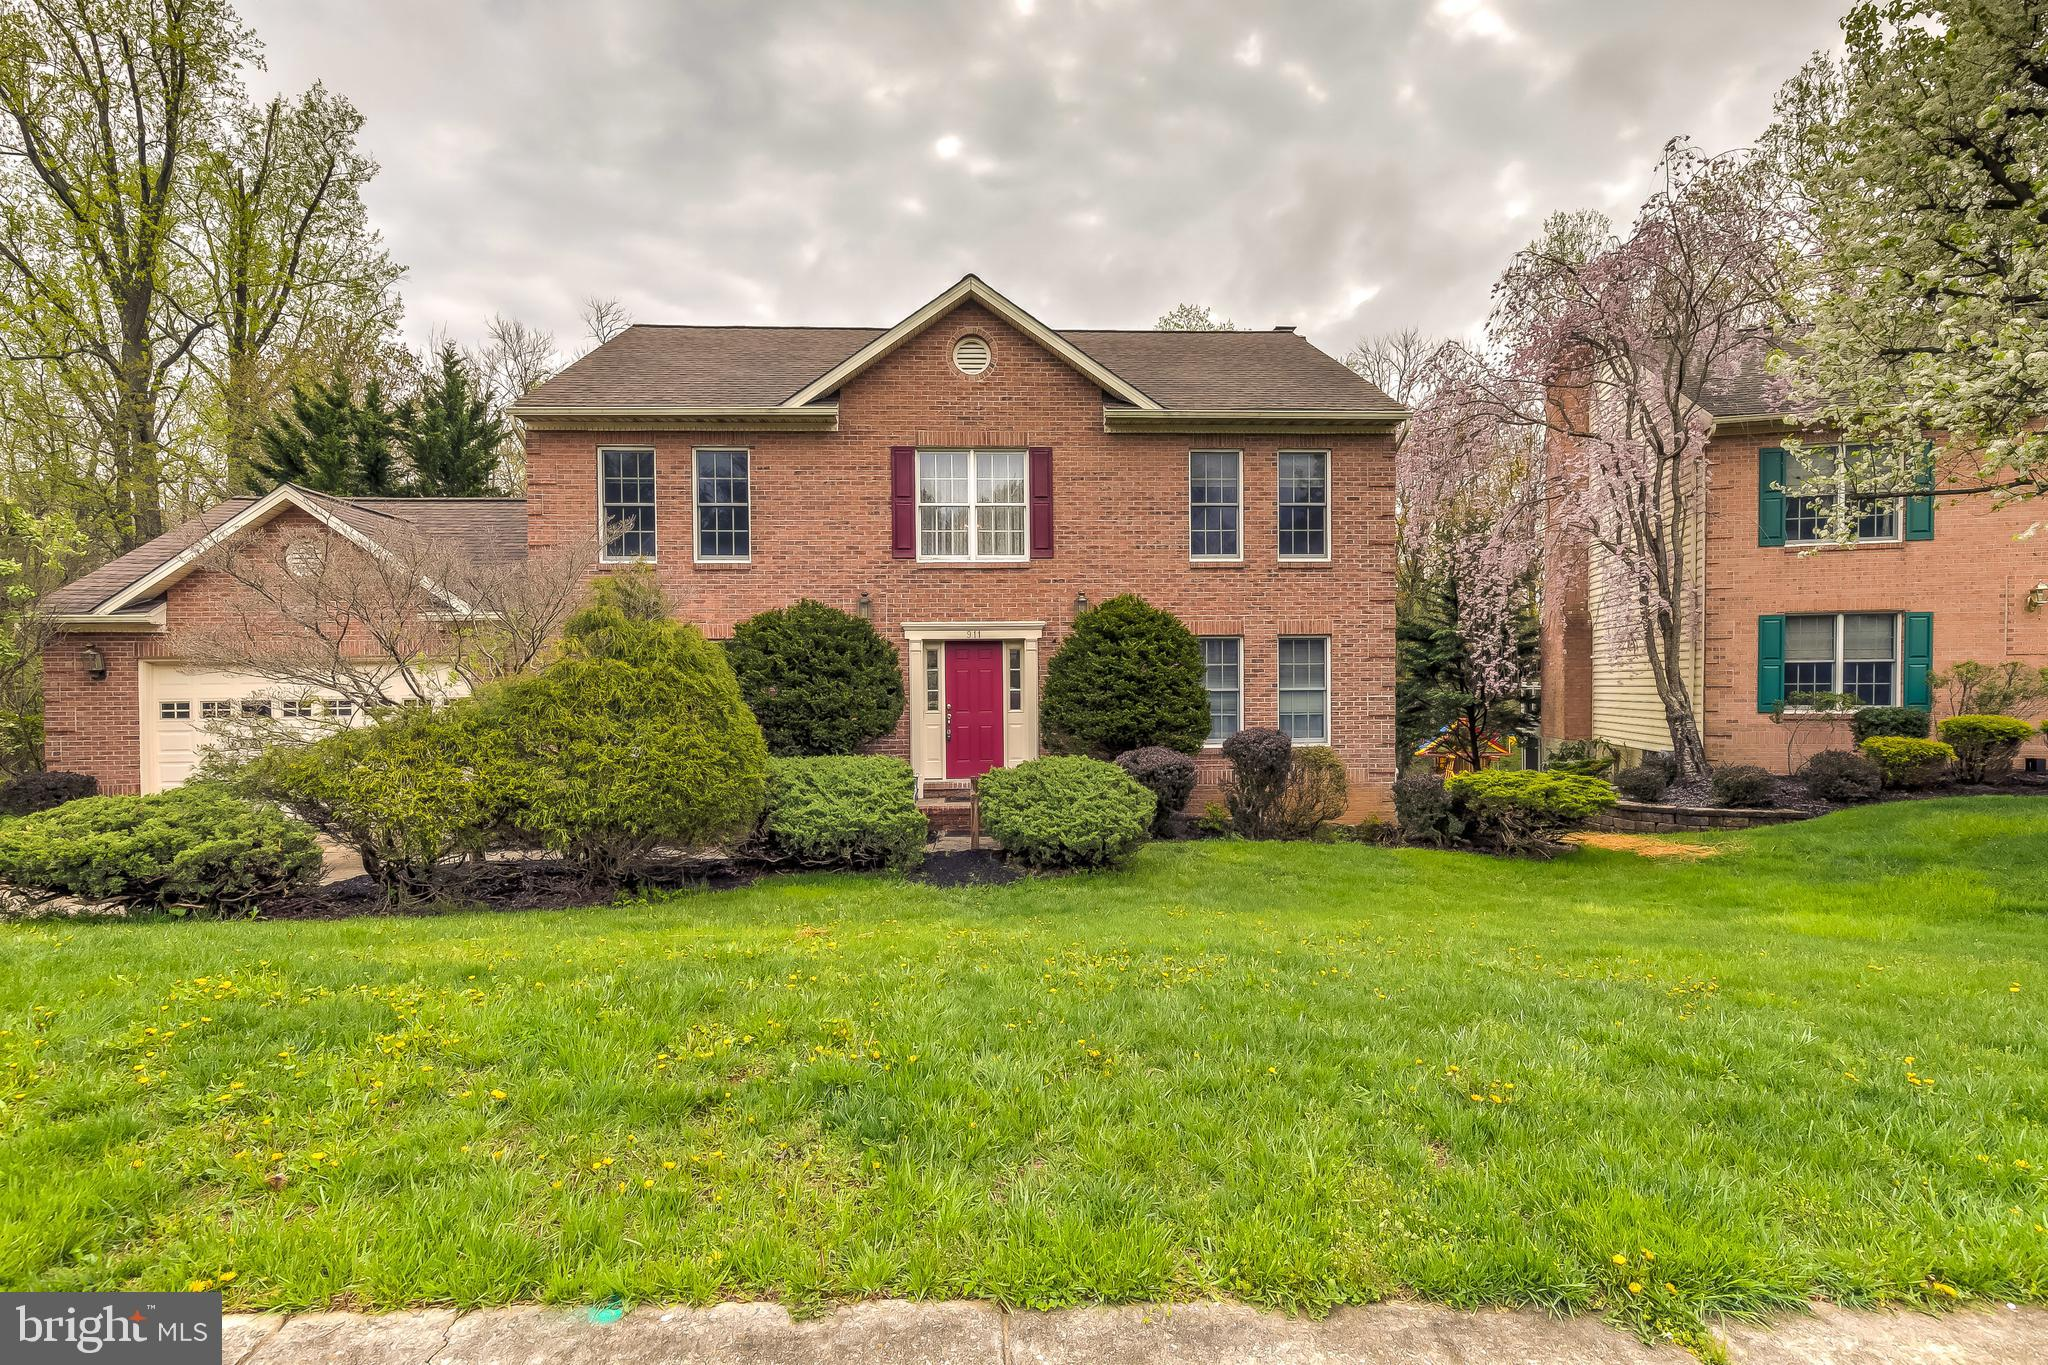 911 Autumn View Ct, Bel Air, MD, 21014